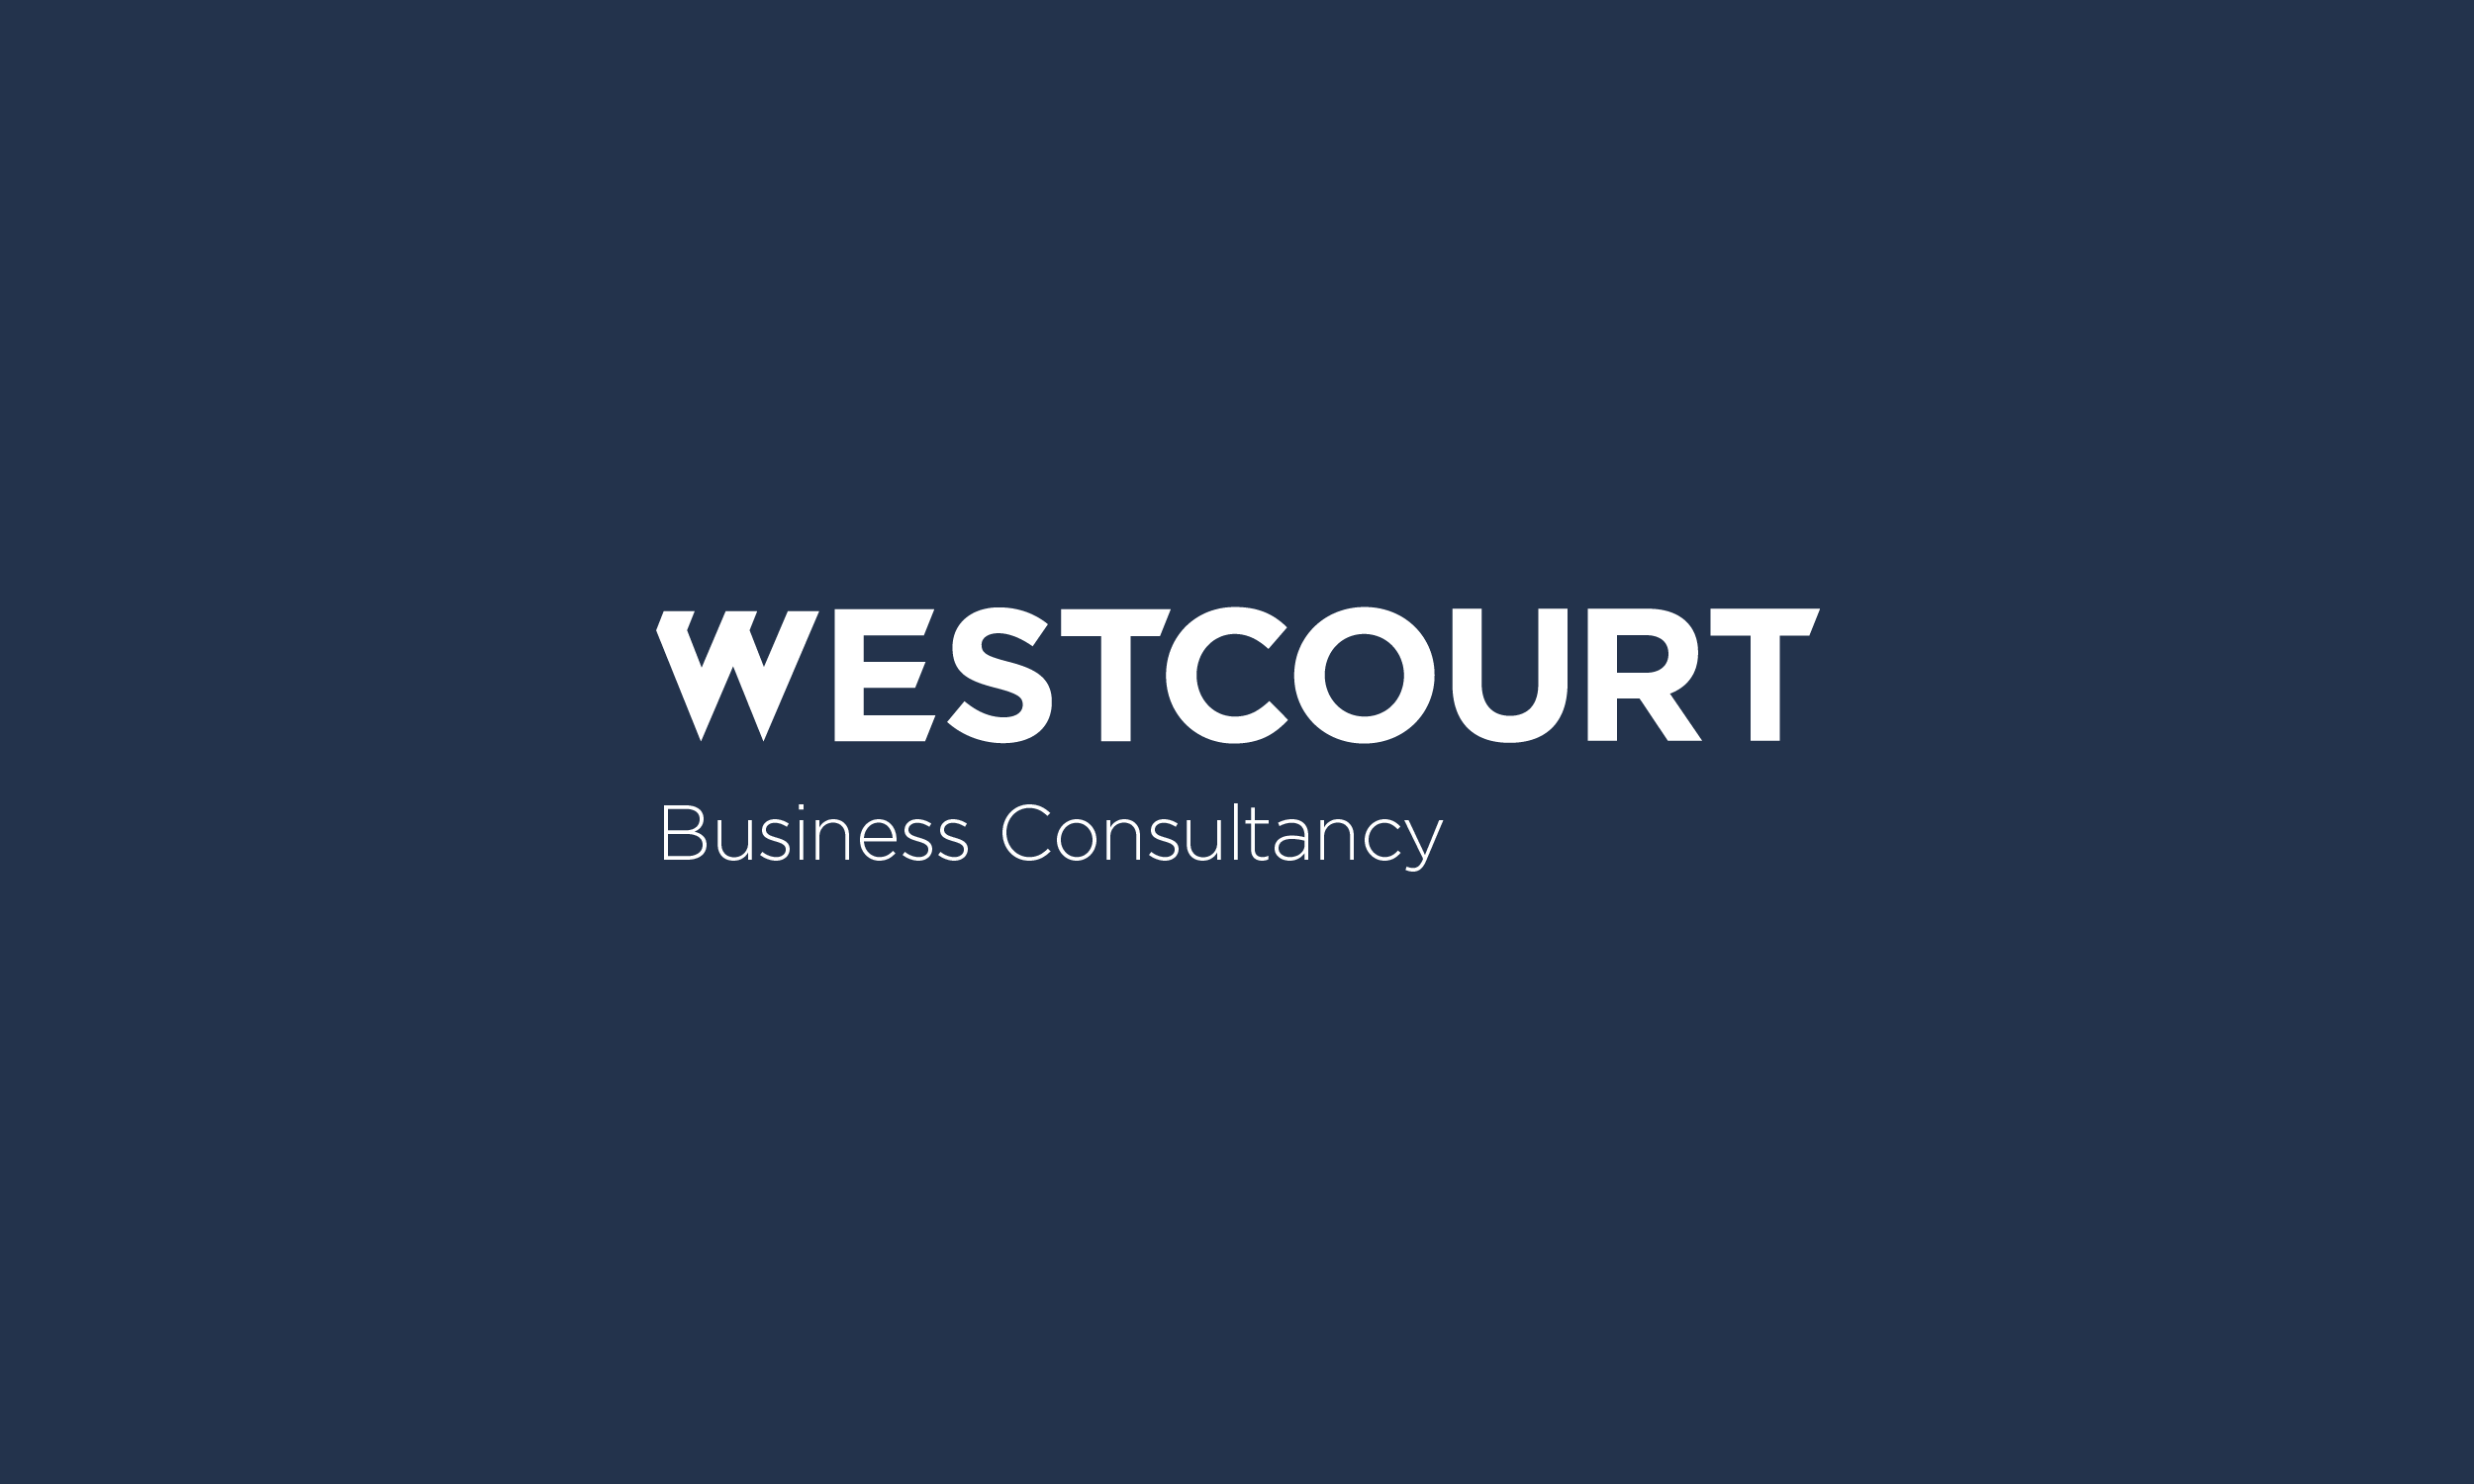 Westcourt-Business-Consultancy-Tunbridge-StudioArtboard 1.png